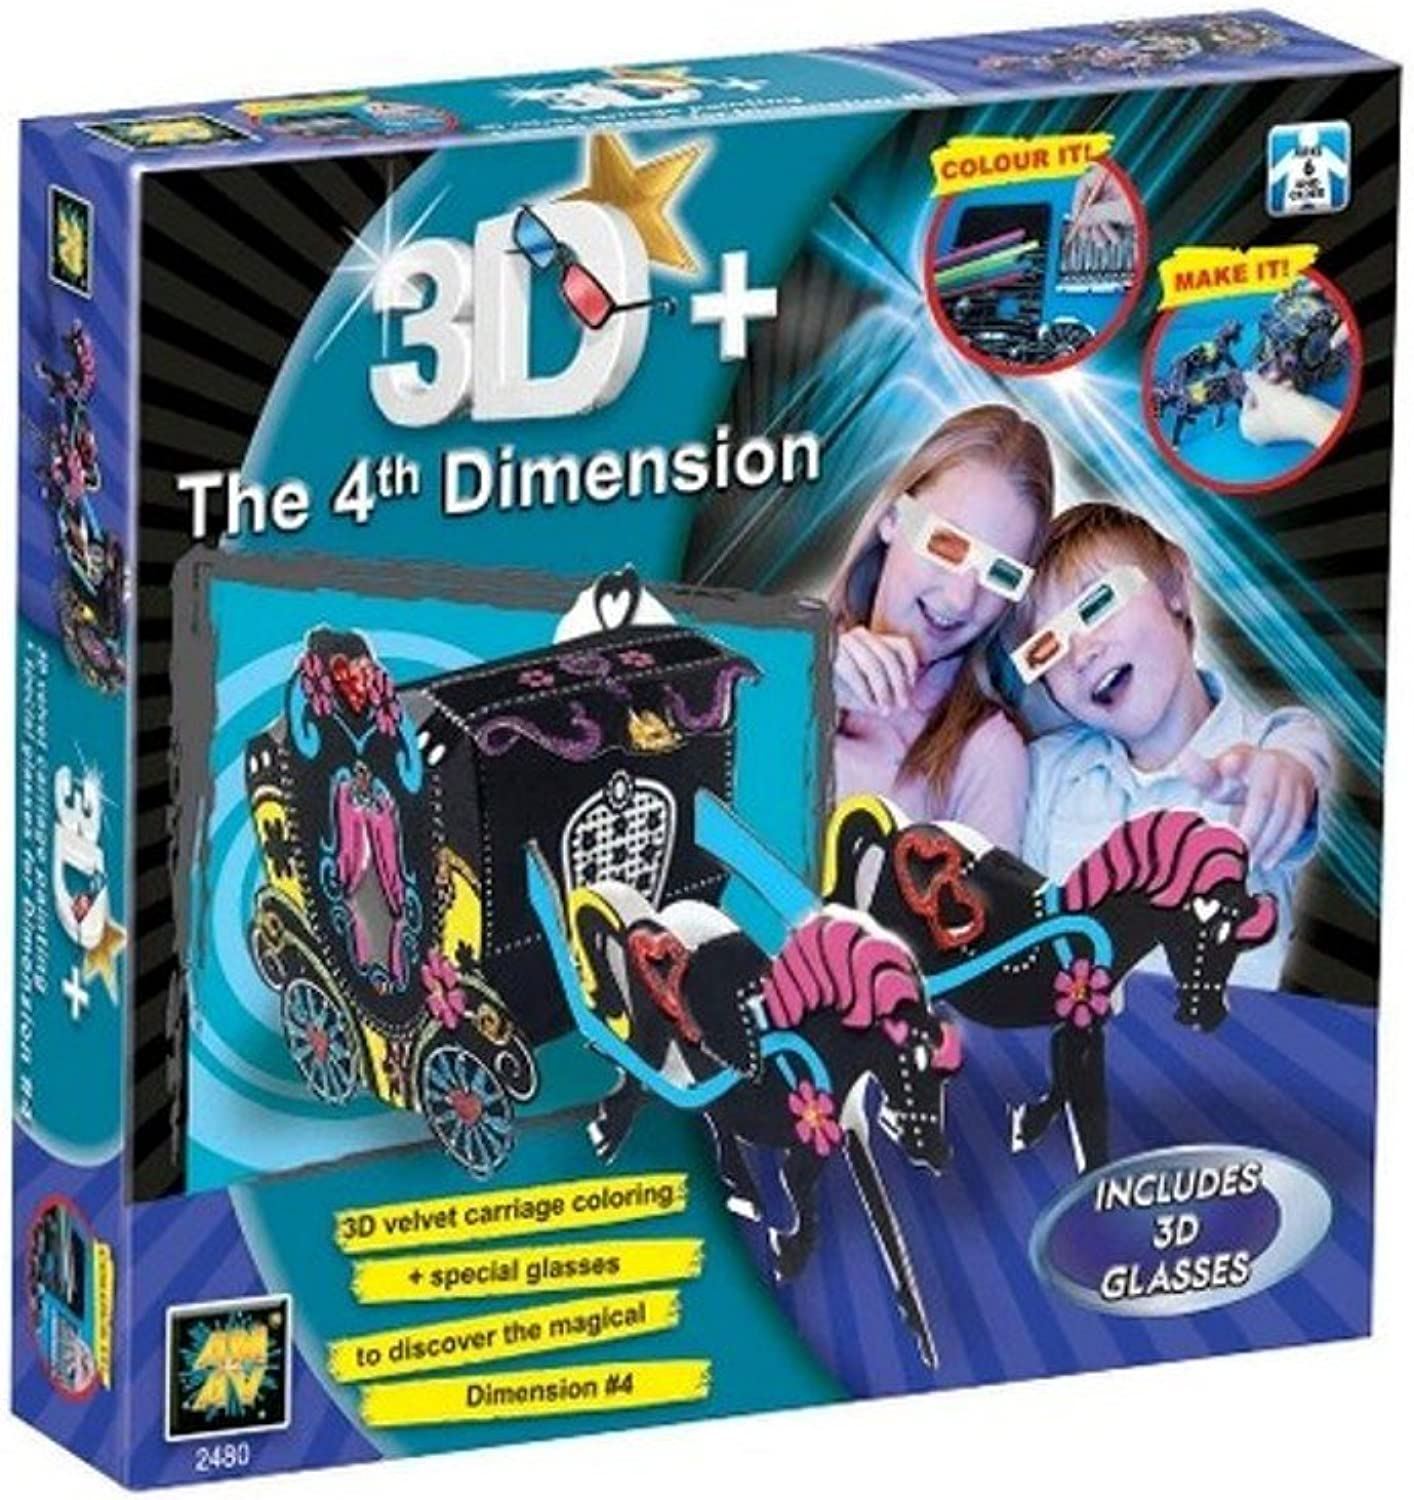 3D+ The 4th Dimension Carriage